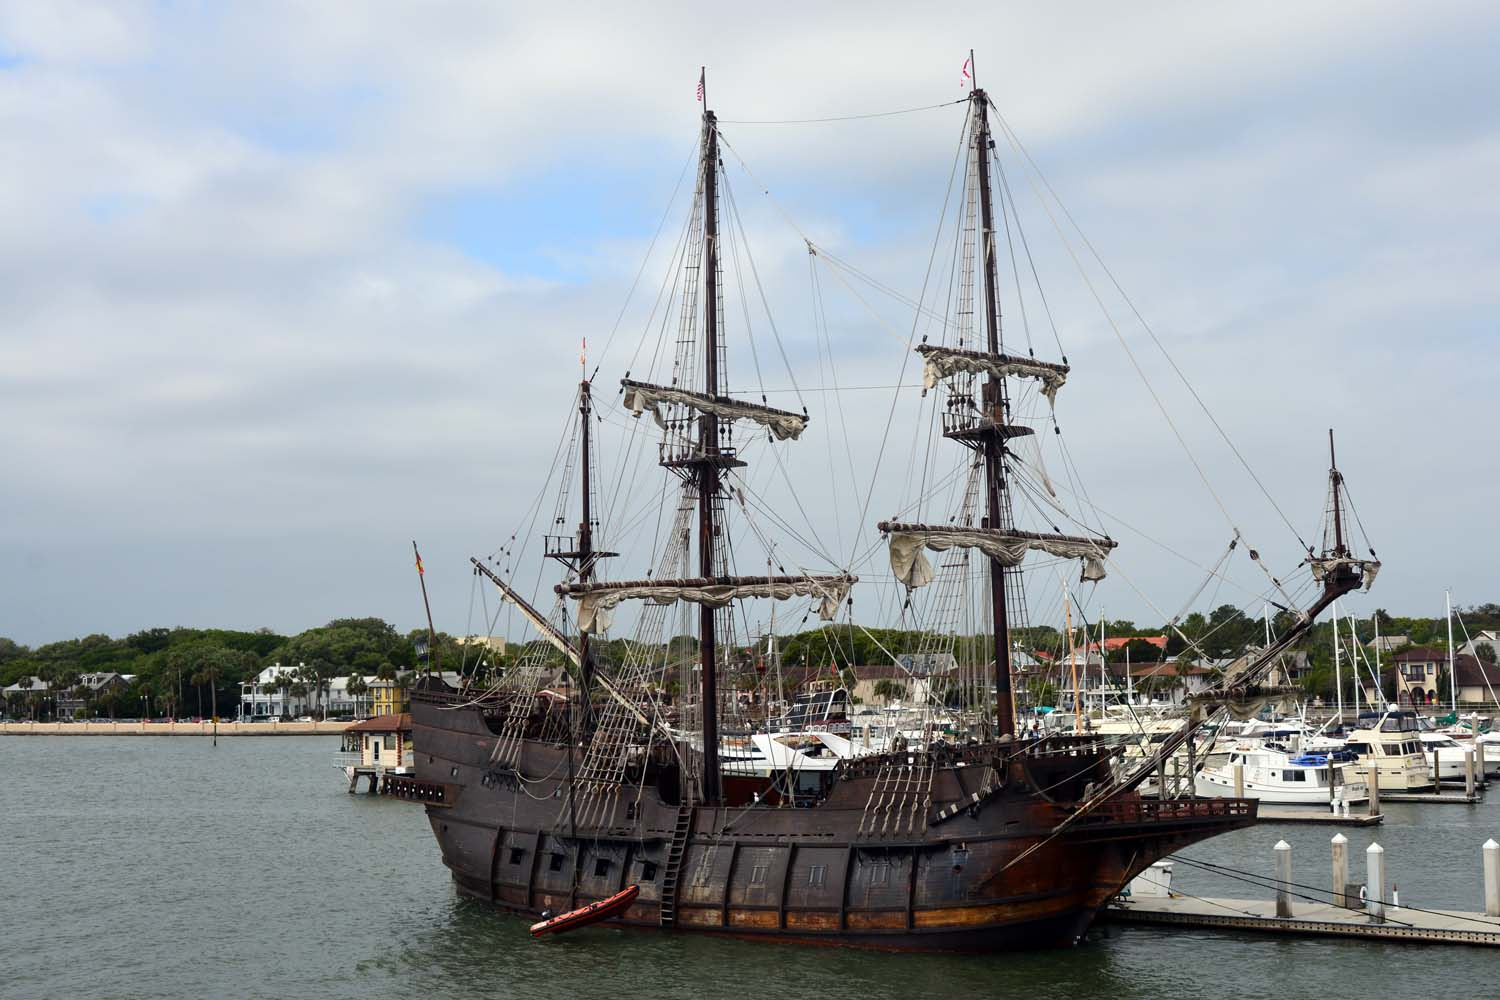 The El Galeon 16th century Spanish galleon 1/1 replica